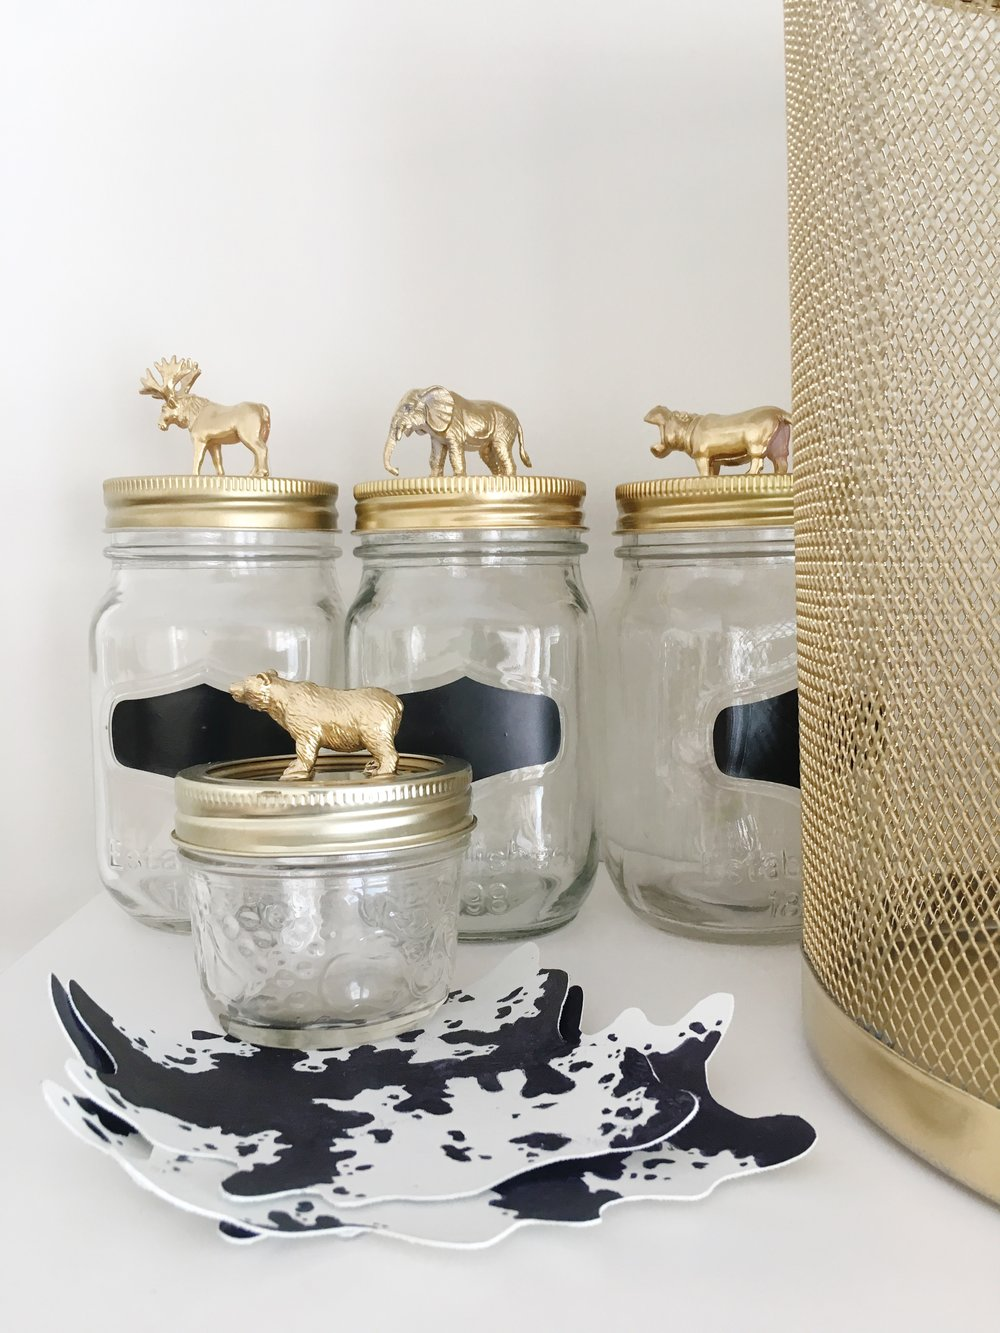 "DIY DECORATED JARS                96                Normal     0                     false     false     false         EN-US     X-NONE     X-NONE                                                                                                                                                                                                                                                                                                                                                                                                                                                                                                                                                                                                                                                                                                                                                                                                                                                                                                                                                                                                                                                                                                                                                                                                                                                                                                                                                                                                                                                                                                                                                                                                                                                                                                                                 /* Style Definitions */ table.MsoNormalTable 	{mso-style-name:""Table Normal""; 	mso-tstyle-rowband-size:0; 	mso-tstyle-colband-size:0; 	mso-style-noshow:yes; 	mso-style-priority:99; 	mso-style-parent:""""; 	mso-padding-alt:0cm 5.4pt 0cm 5.4pt; 	mso-para-margin:0cm; 	mso-para-margin-bottom:.0001pt; 	mso-pagination:widow-orphan; 	font-size:12.0pt; 	font-family:Calibri; 	mso-ascii-font-family:Calibri; 	mso-ascii-theme-font:minor-latin; 	mso-hansi-font-family:Calibri; 	mso-hansi-theme-font:minor-latin;}      Materials:  - Mason Jars, any size - Drop Cloth - Strong Glue (Super or Hot Glue) - Figurines - Spray Paint  Steps:  1. Remove lid (including rim) from mason jar. 2. Select the figurine you'd like to place on the top of each jar. Using the glue, attach each figurine to the centre of the jar lid. Allow to dry. 3. Place the lid (with figurine now attached) on a drop cloth to paint. Use the spray paint to apply the first layer, making sure to cover all angles of the figurine. Allow to dry before applying second and third layer. 4. Once fully dried you can now place the lid back on the jar and use it for storing smaller items!                96                Normal     0                     false     false     false         EN-US     X-NONE     X-NONE                                                                                                                                                                                                                                                                                                                                                                                                                                                                                                                                                                                                                                                                                                                                                                                                                                                                                                                                                                                                                                                                                                                                                                                                                                                                                                                                                                                                                                                                                                                                                                                                                                                                                                                                 /* Style Definitions */ table.MsoNormalTable 	{mso-style-name:""Table Normal""; 	mso-tstyle-rowband-size:0; 	mso-tstyle-colband-size:0; 	mso-style-noshow:yes; 	mso-style-priority:99; 	mso-style-parent:""""; 	mso-padding-alt:0cm 5.4pt 0cm 5.4pt; 	mso-para-margin:0cm; 	mso-para-margin-bottom:.0001pt; 	mso-pagination:widow-orphan; 	font-size:12.0pt; 	font-family:Calibri; 	mso-ascii-font-family:Calibri; 	mso-ascii-theme-font:minor-latin; 	mso-hansi-font-family:Calibri; 	mso-hansi-theme-font:minor-latin;}      DIY PAINTED TRASH CAN  Materials:  - Existing metal trash can - Spray Paint - Drop Cloth  Steps:  1. Clean metal trash can 2. Place drop cloth in a well ventilated area. 3. Spray paint trash can and allow to dry before applying 2nd or 3rd coat."